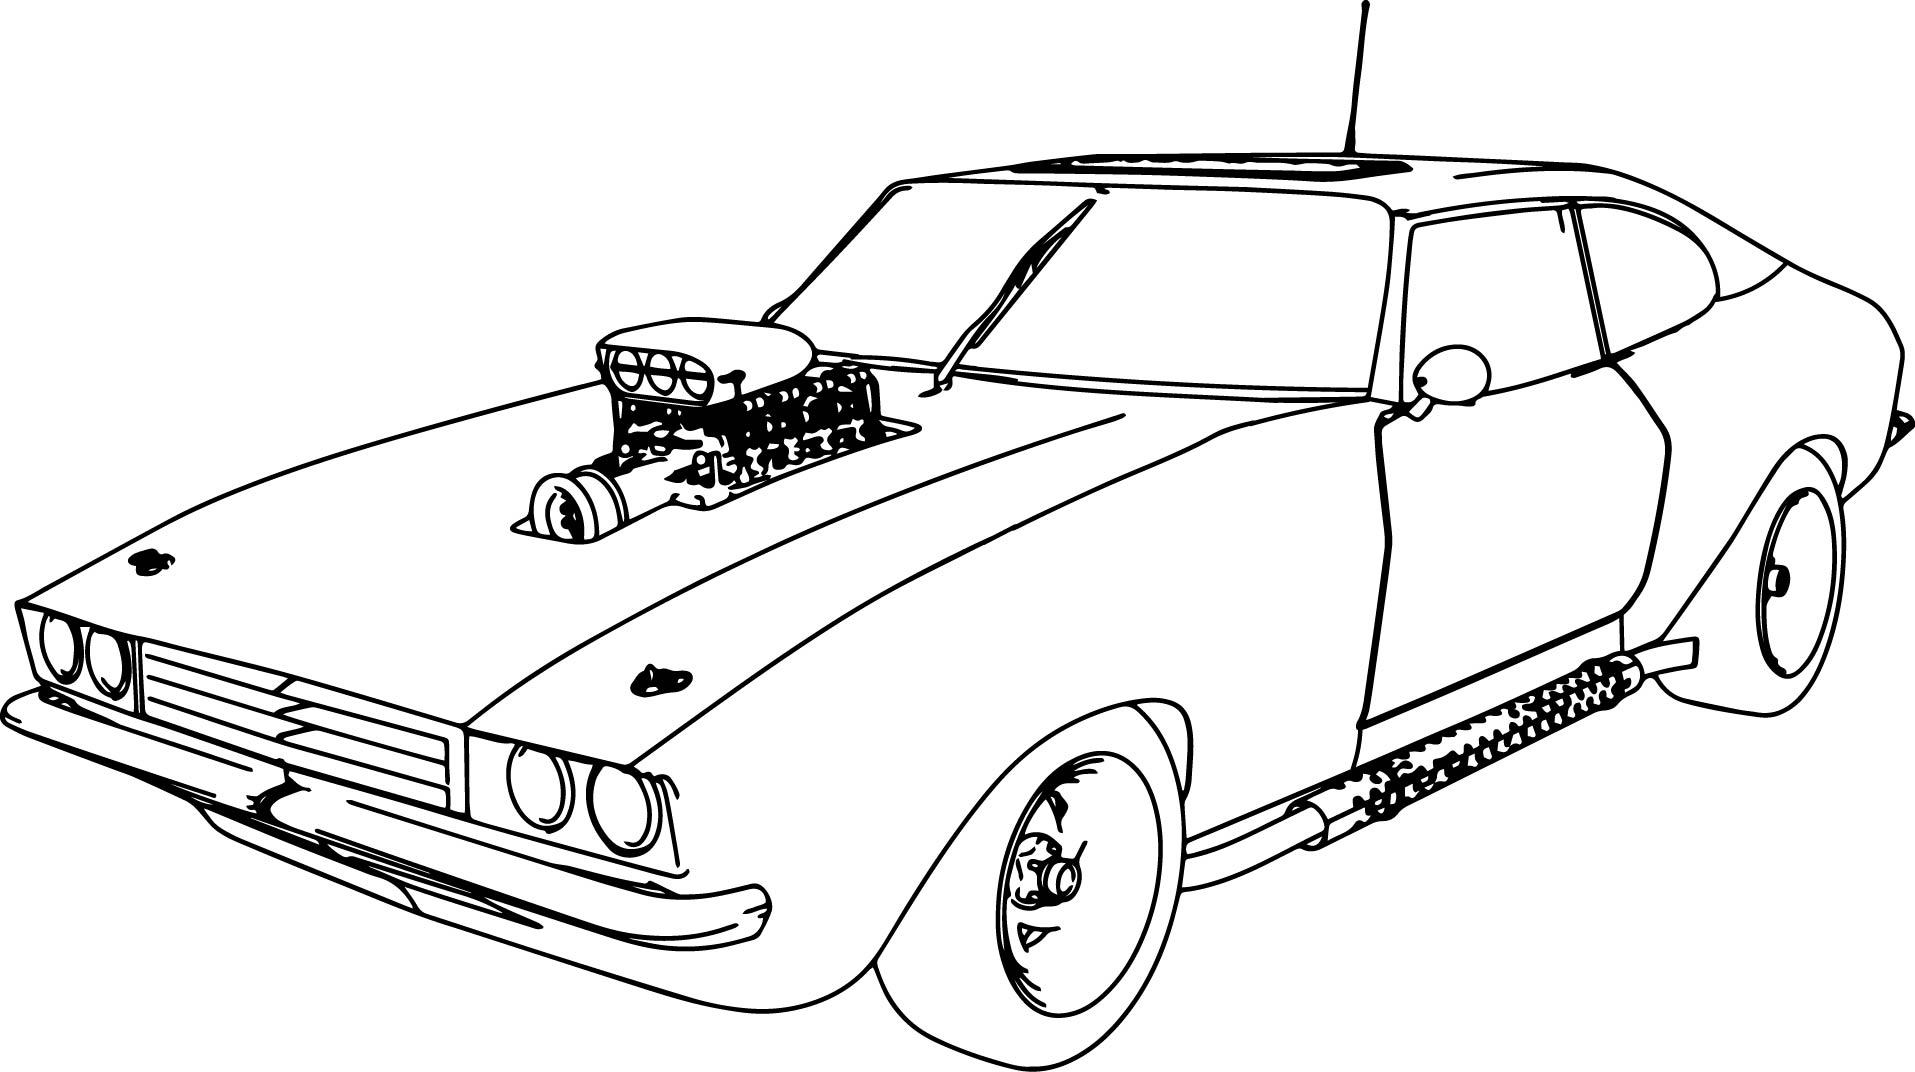 Muscle Car 70 Old Sport Car Coloring Page | Wecoloringpage